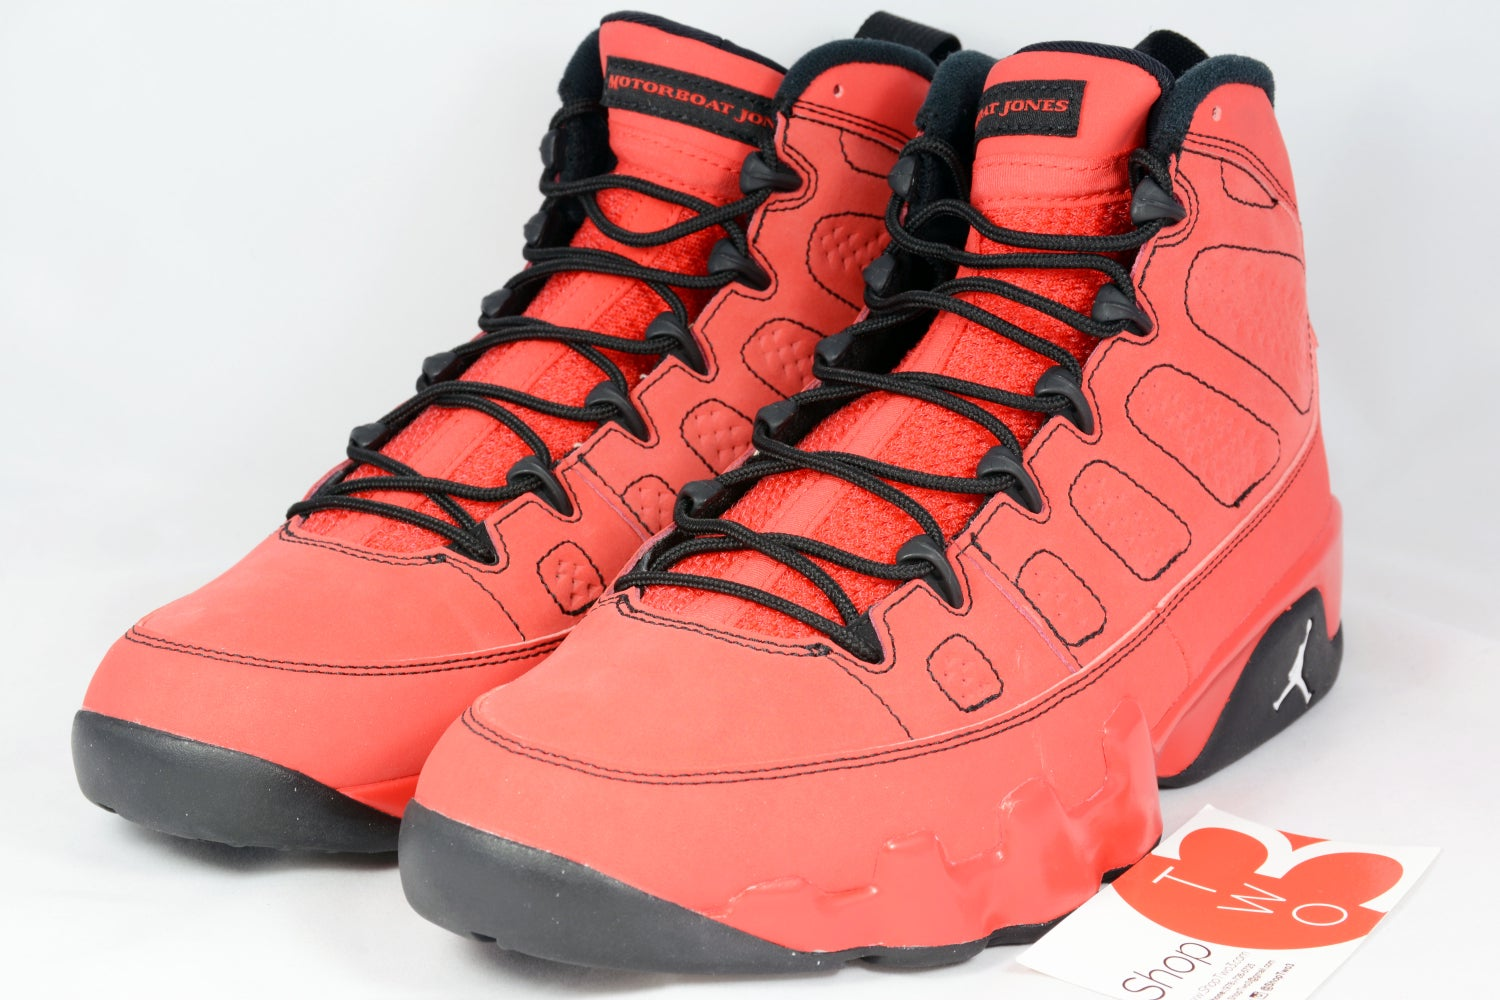 e146fad998cd42 Image of Air jordan 9 retro